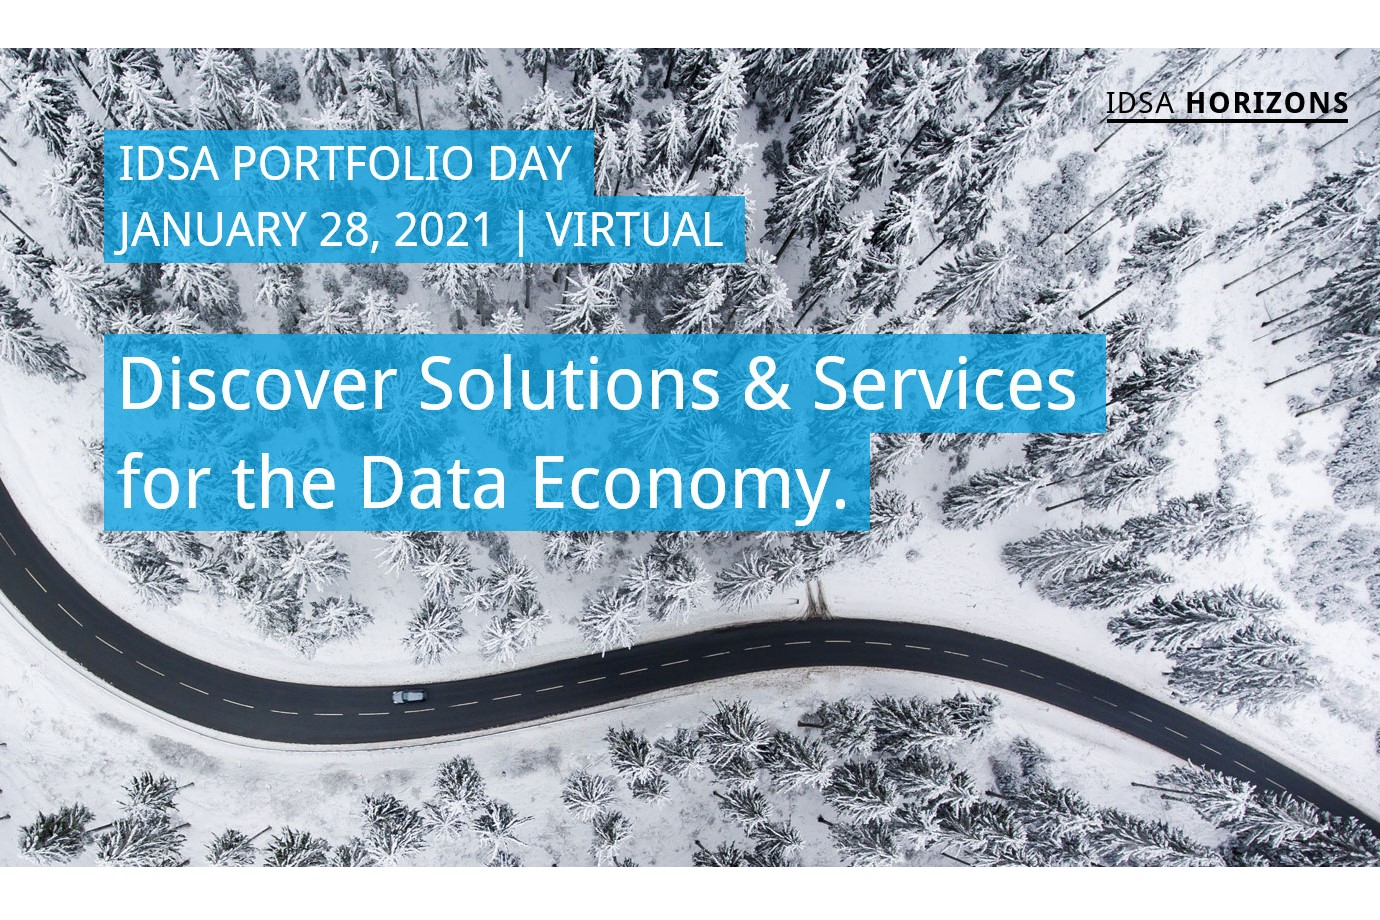 IDSA Portfolio Day: Solutions & Services for the Data Economy